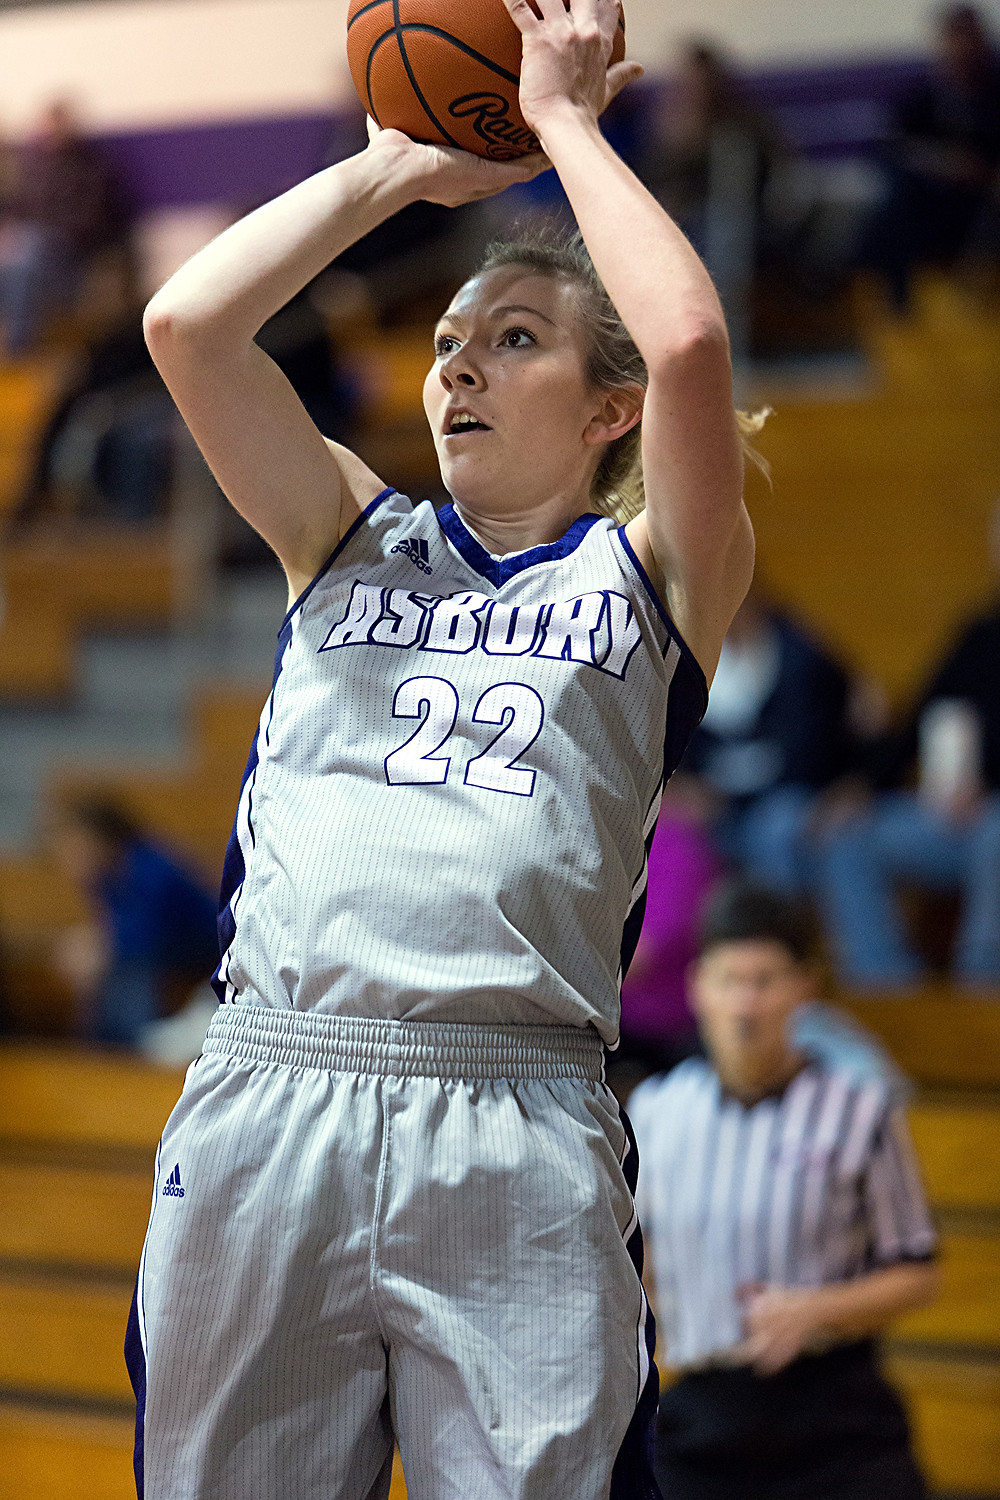 CATIE FLETCHER, a former Woodford County High School girls' basketball player, scored 30 points to help lead Asbury University to an 87-82 overtime win over Indiana-University East on Tuesday, March 1, to capture its second-consecutive KIAC title. (Photo courtesy of Asbury University)